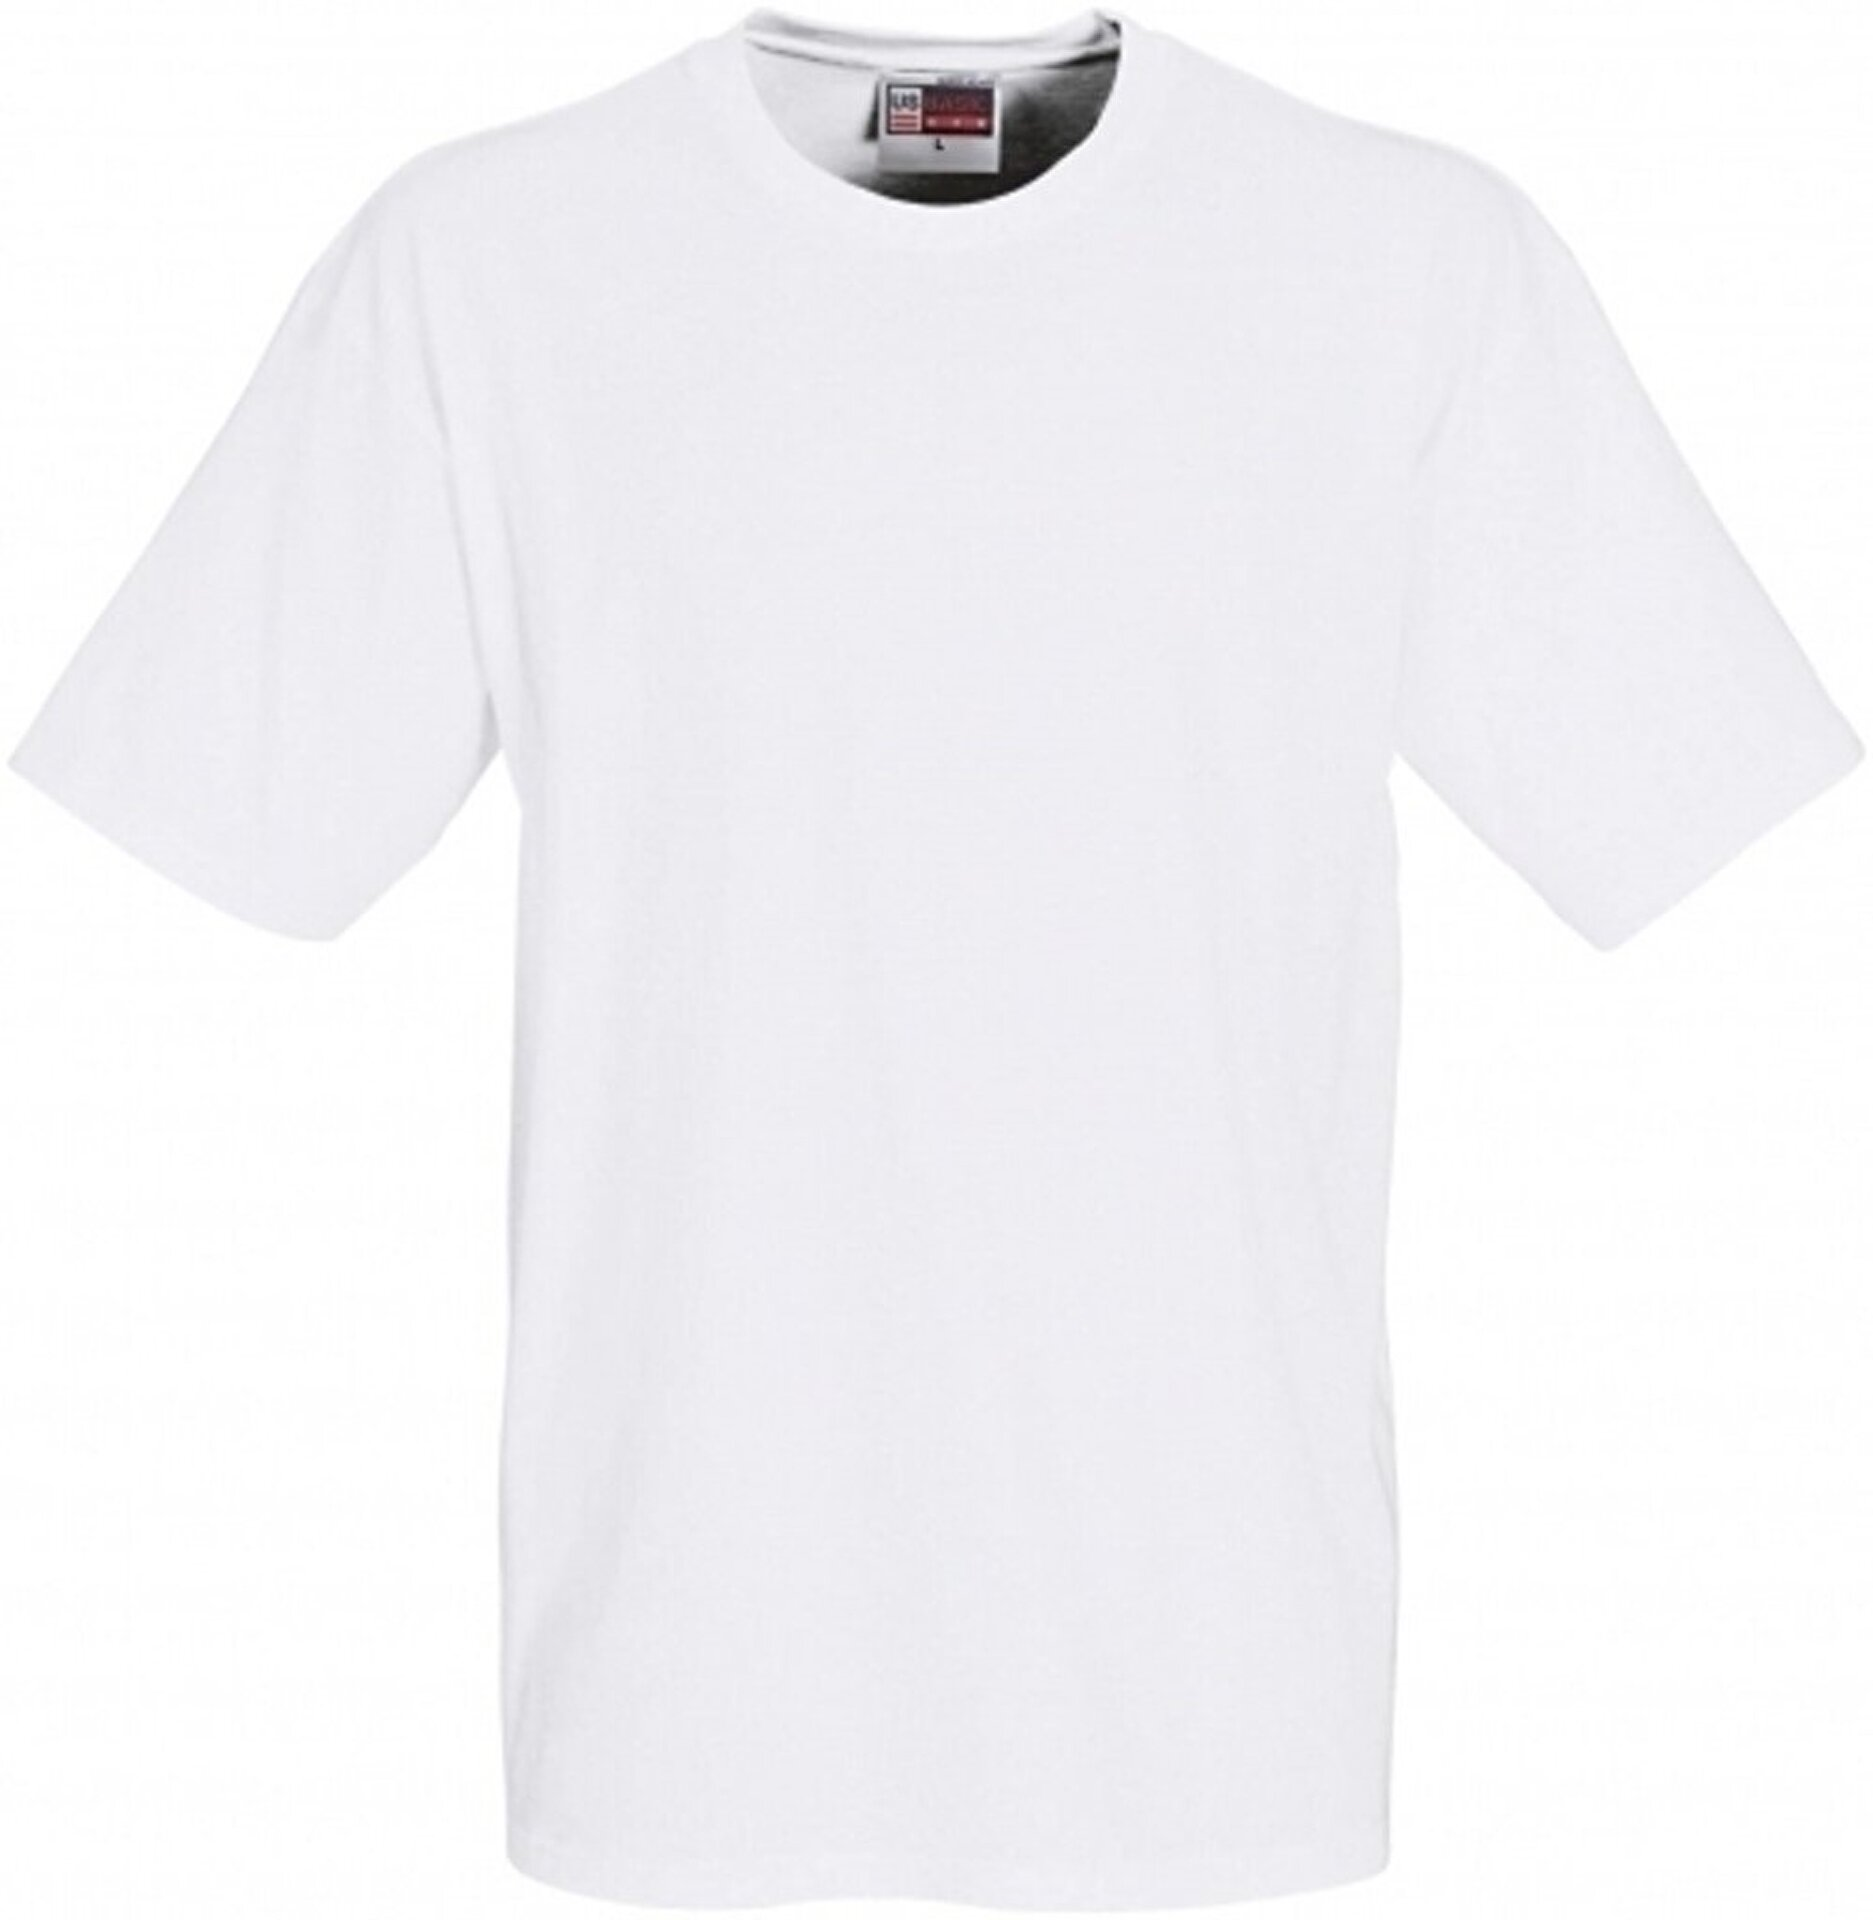 Picture of Us Basic Super Club Beyaz T-Shirt